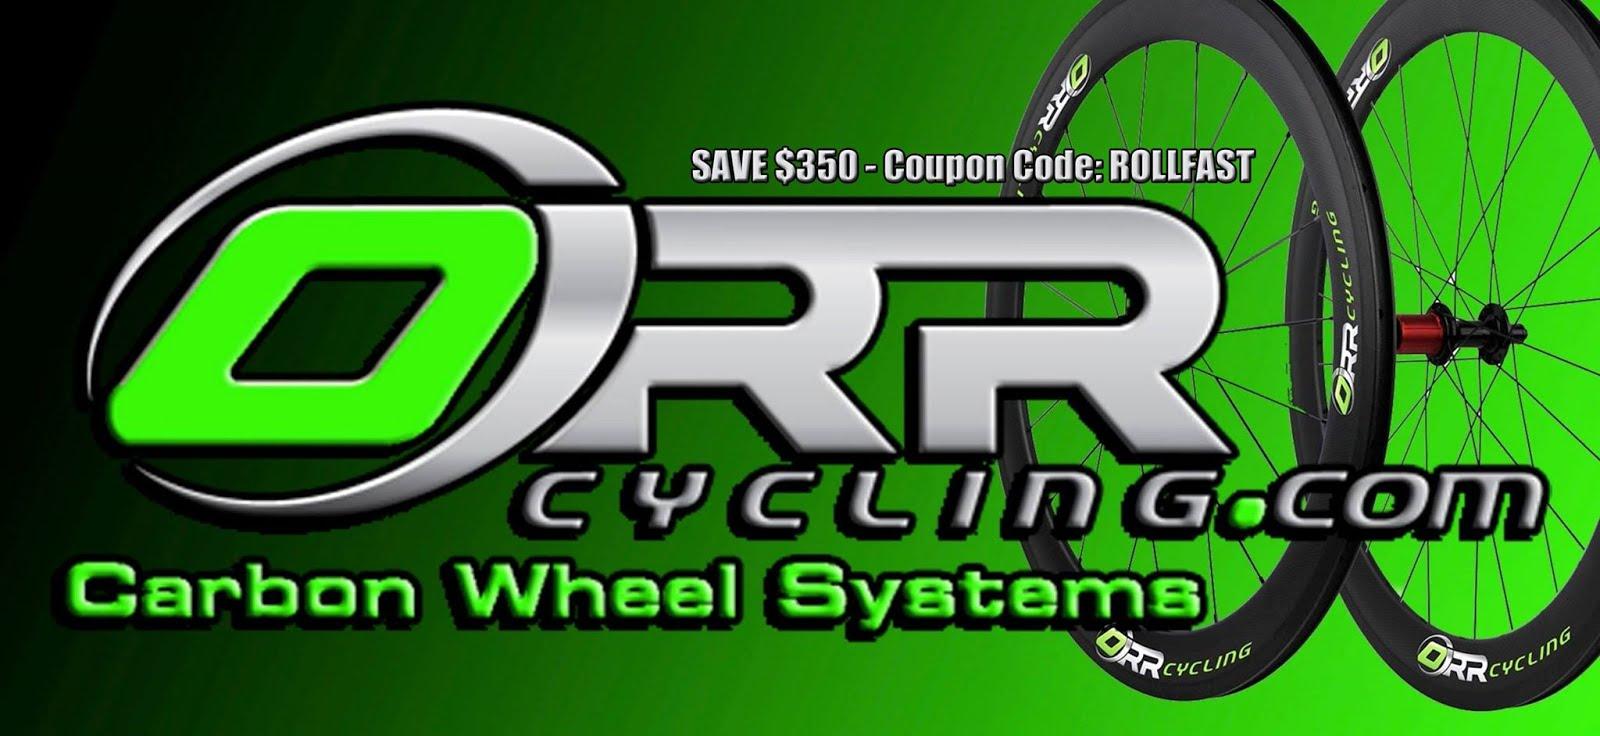 ORR Cycling Carbon Wheel Systems